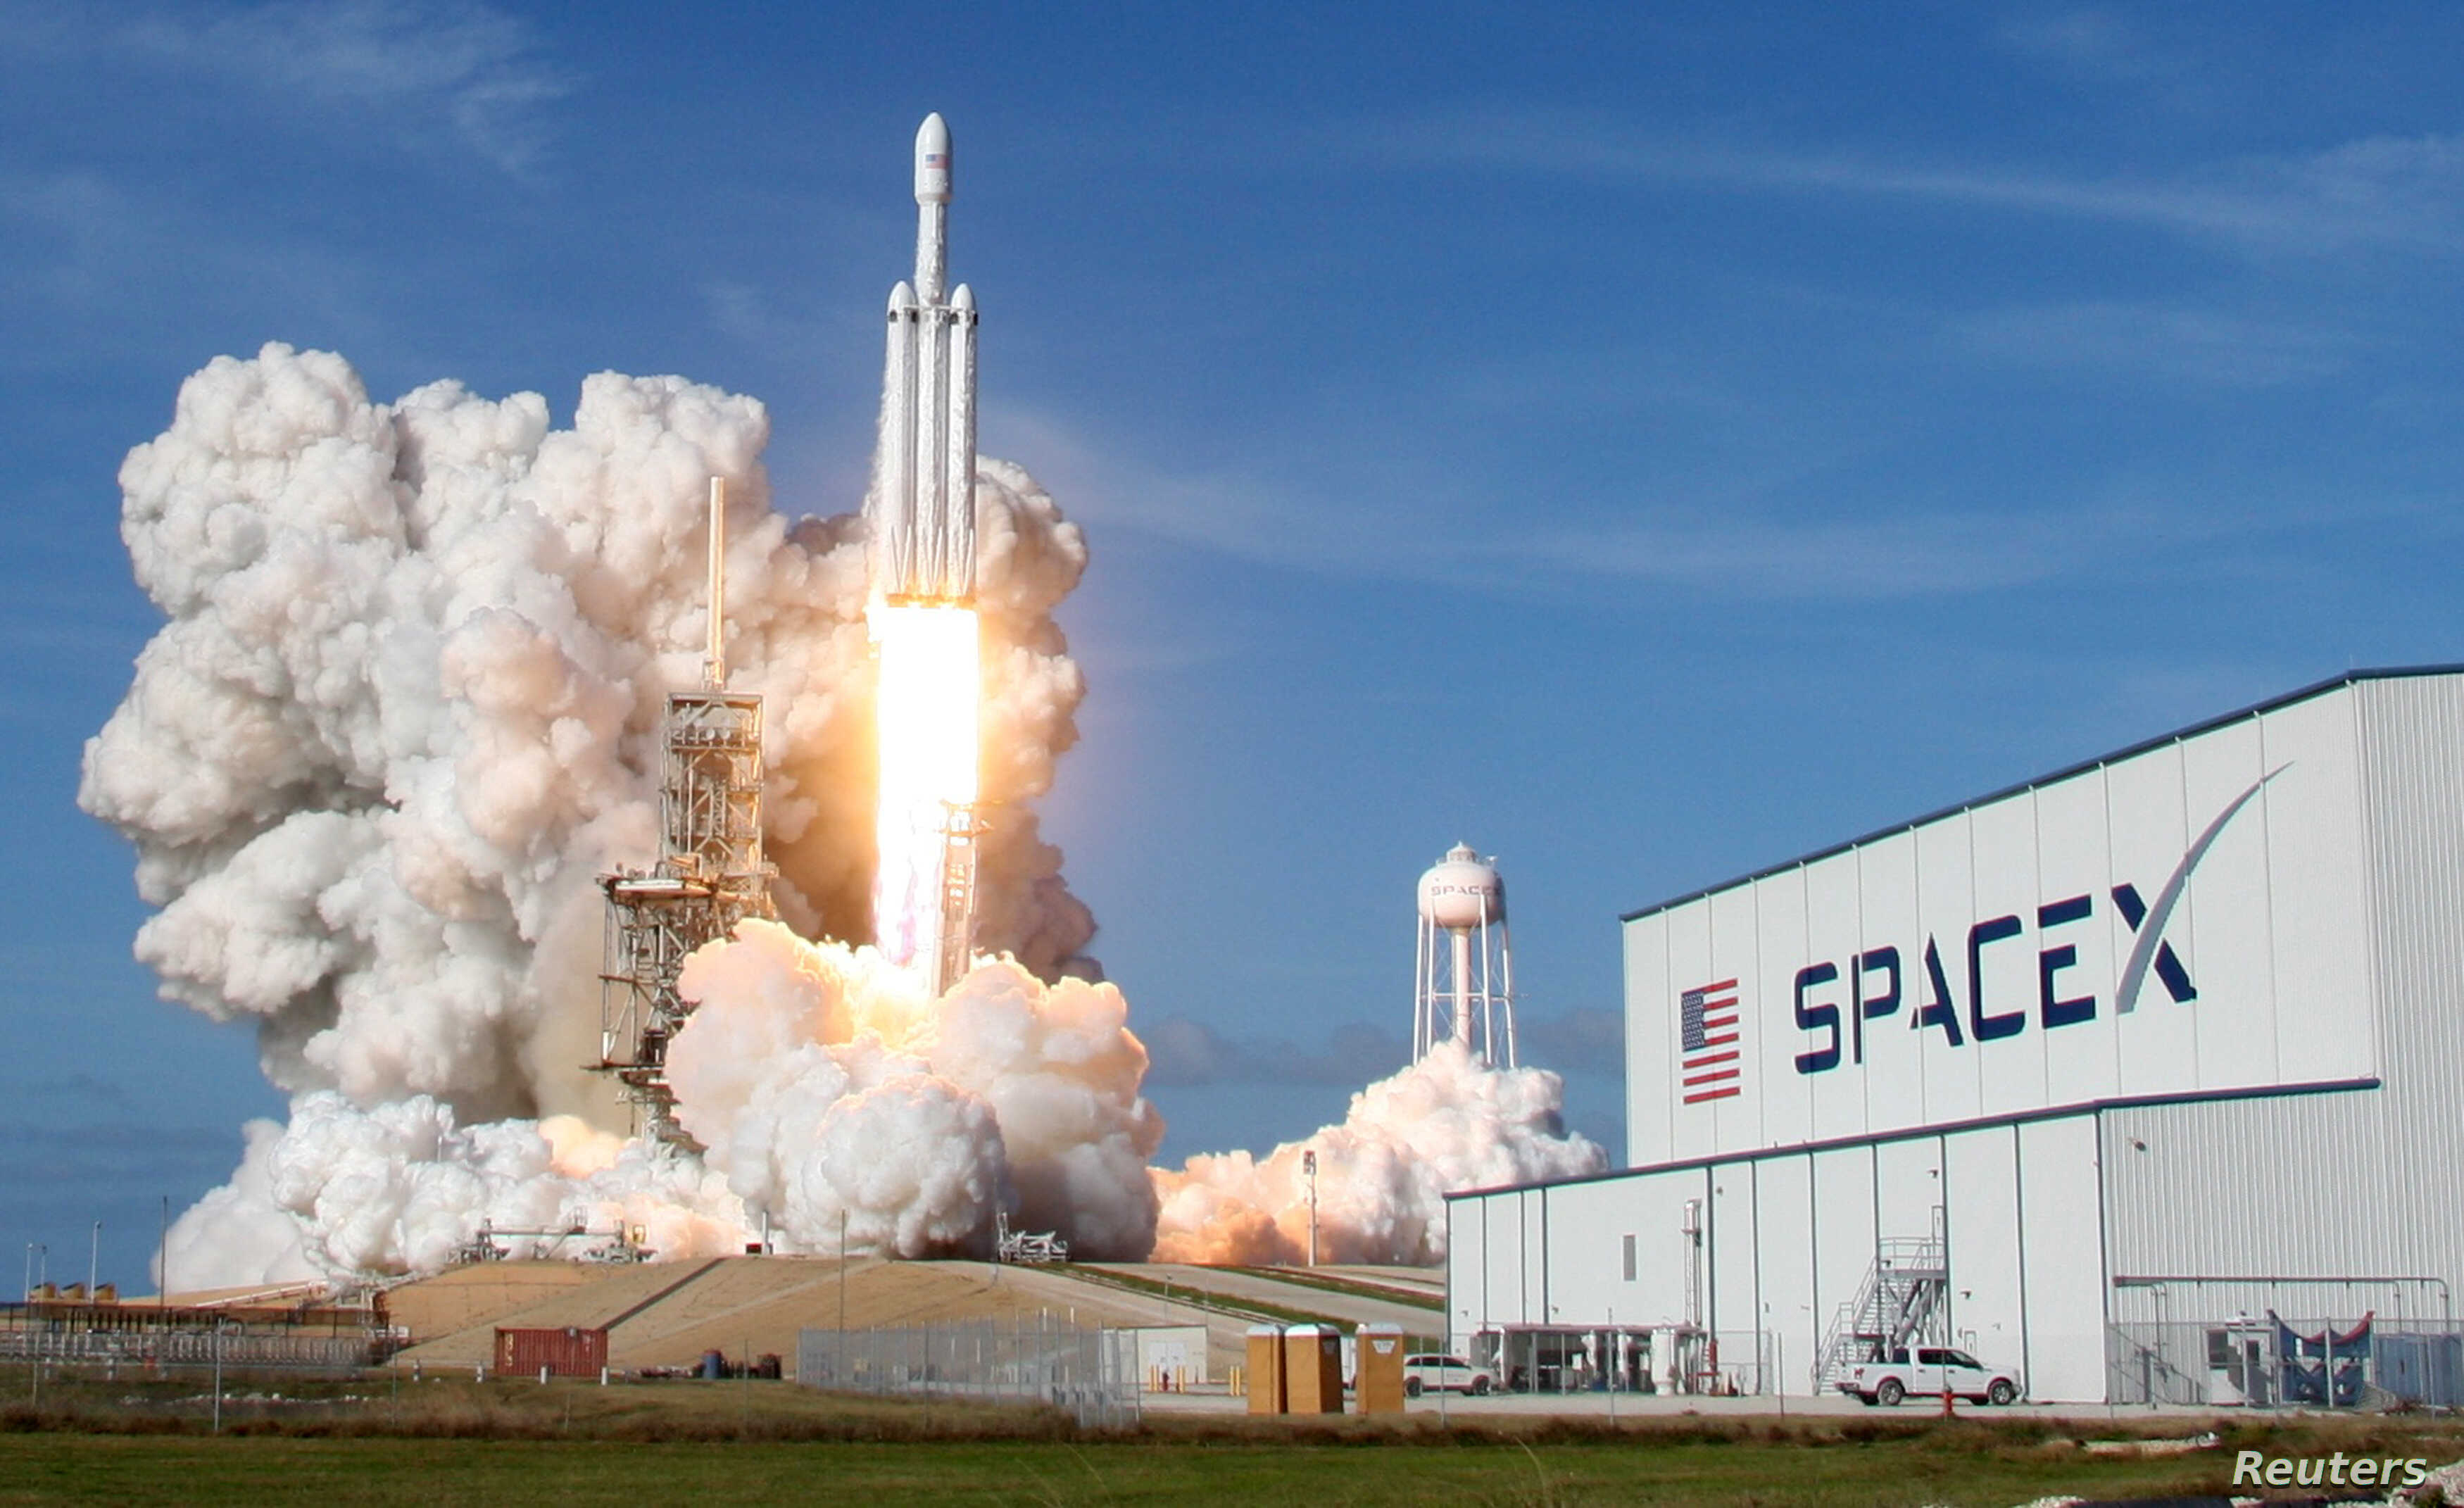 https://www.study24x7.com/article/878/spacex-made-his...